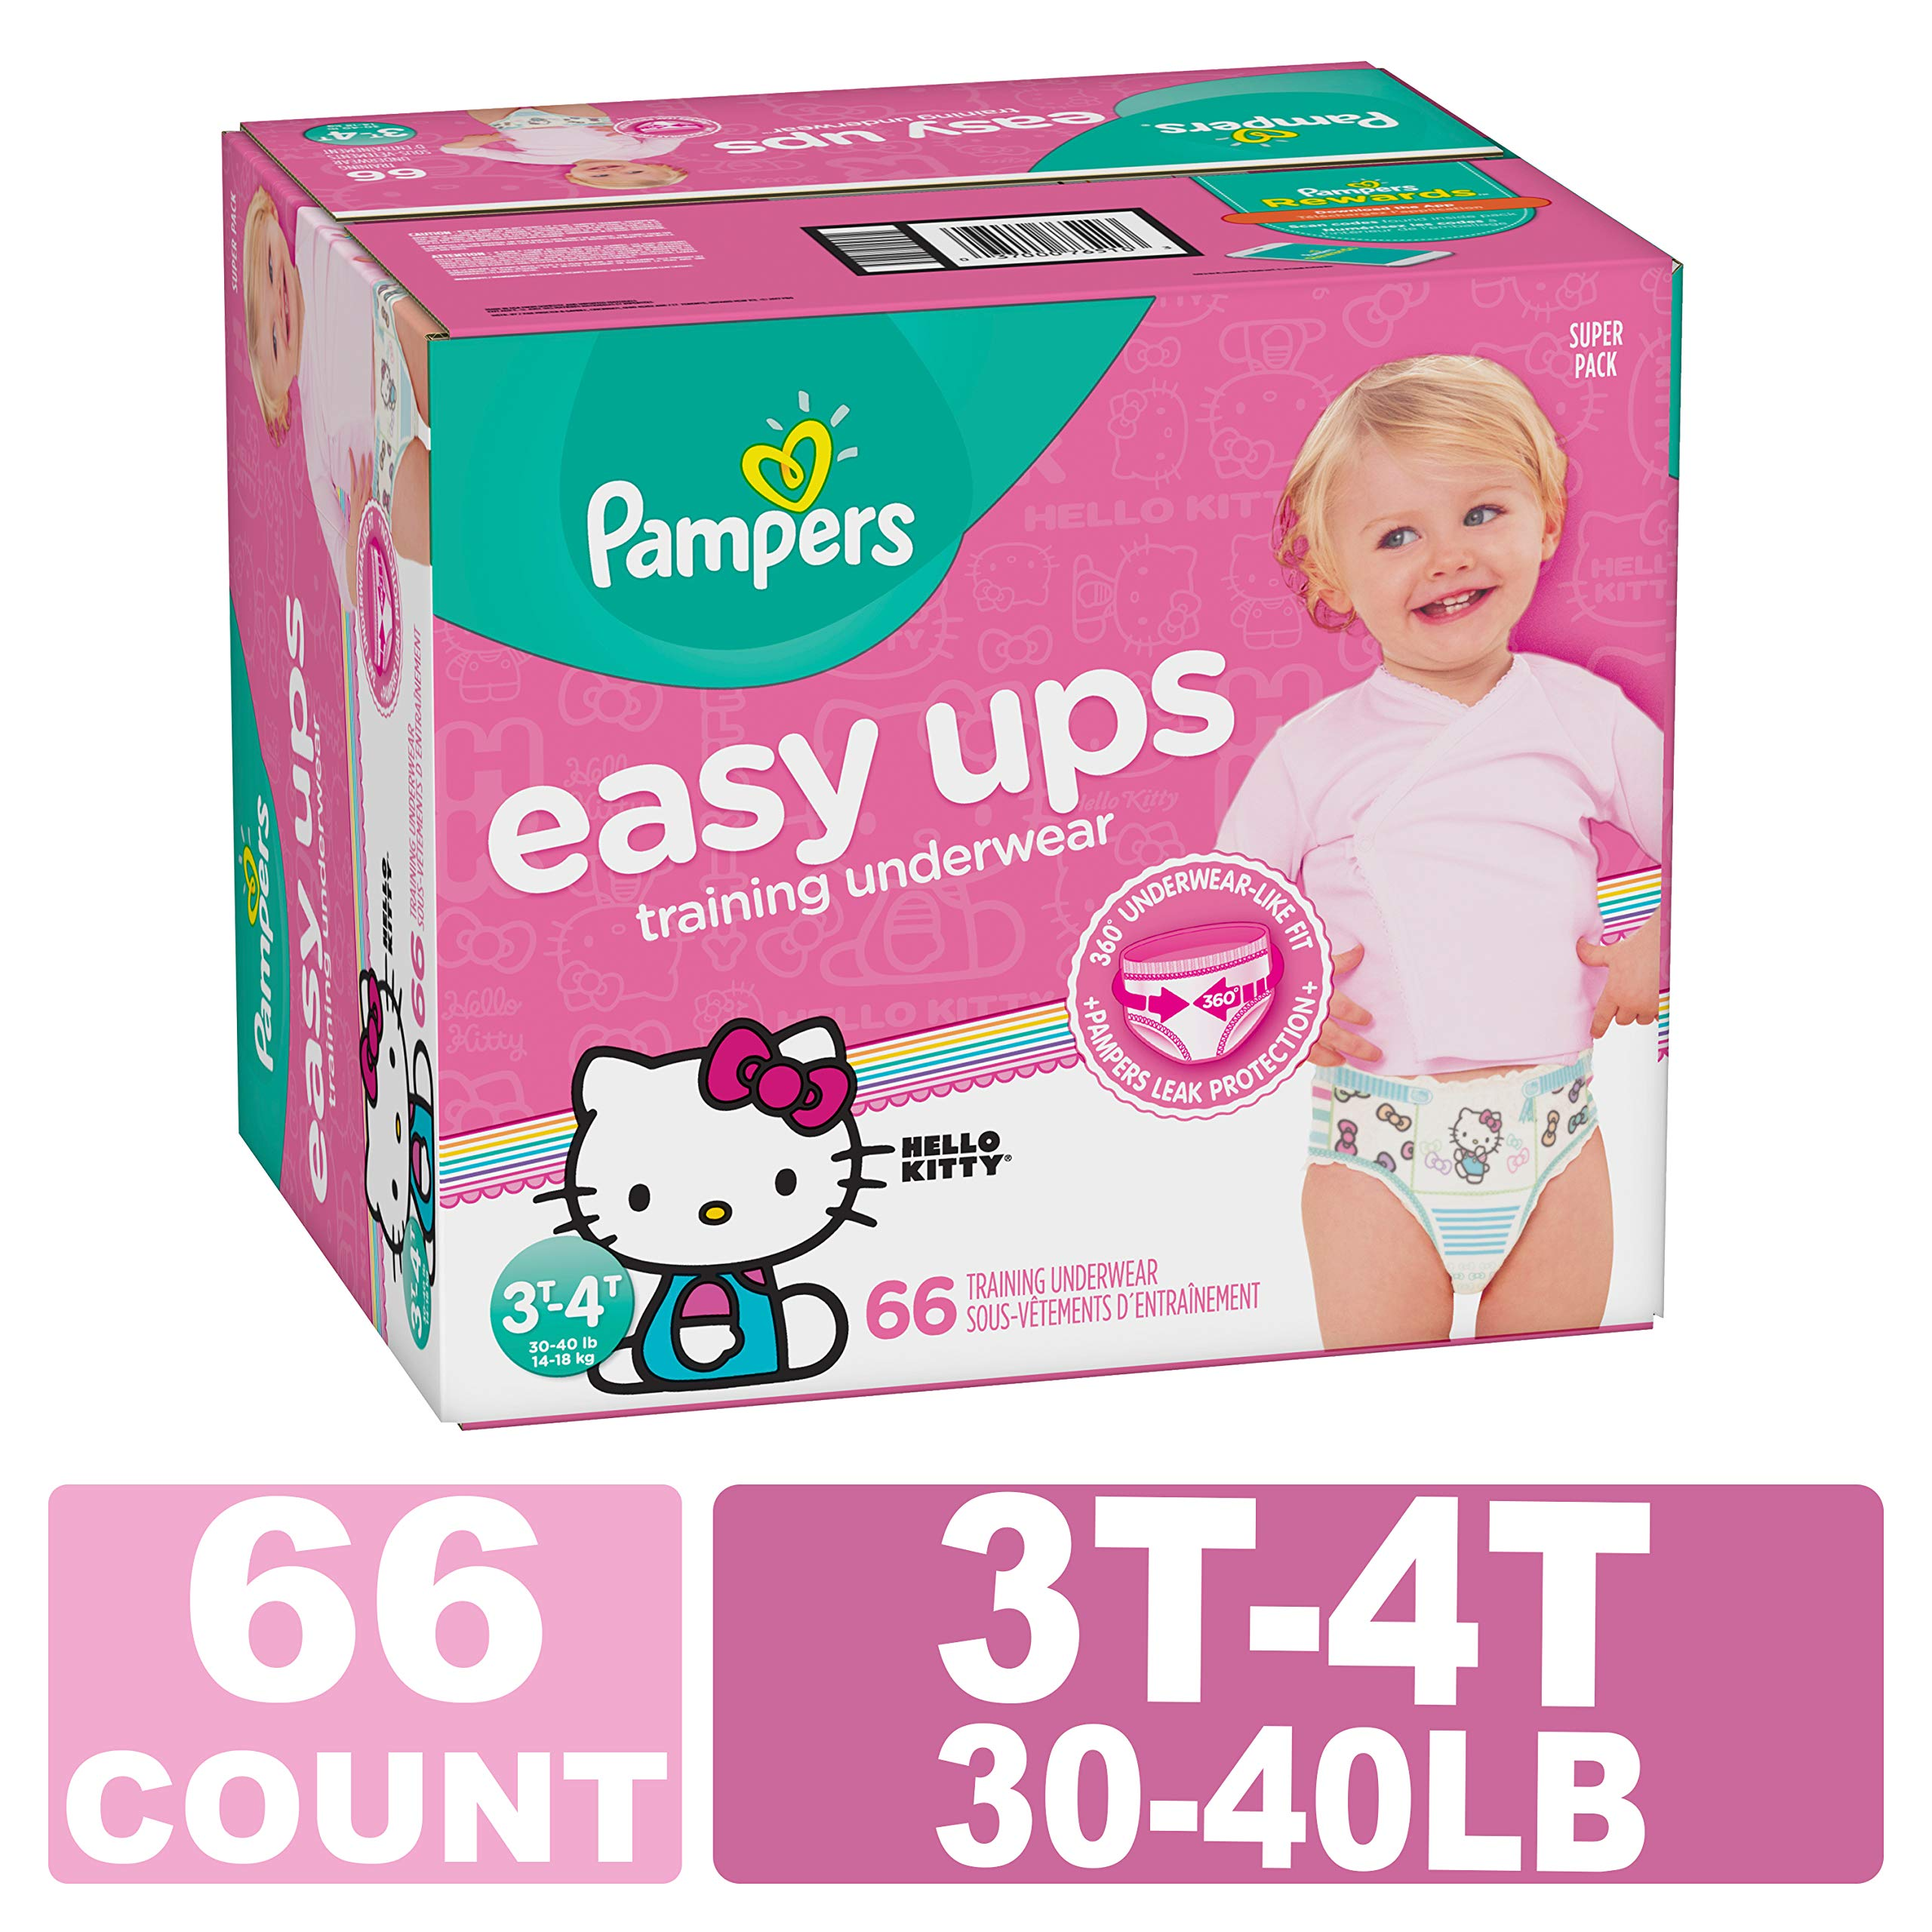 Pampers Easy Ups Pull On Disposable Training Diaper for Girls Size 5 (3T-4T) 66 Count, Super Pack by Pampers (Image #1)